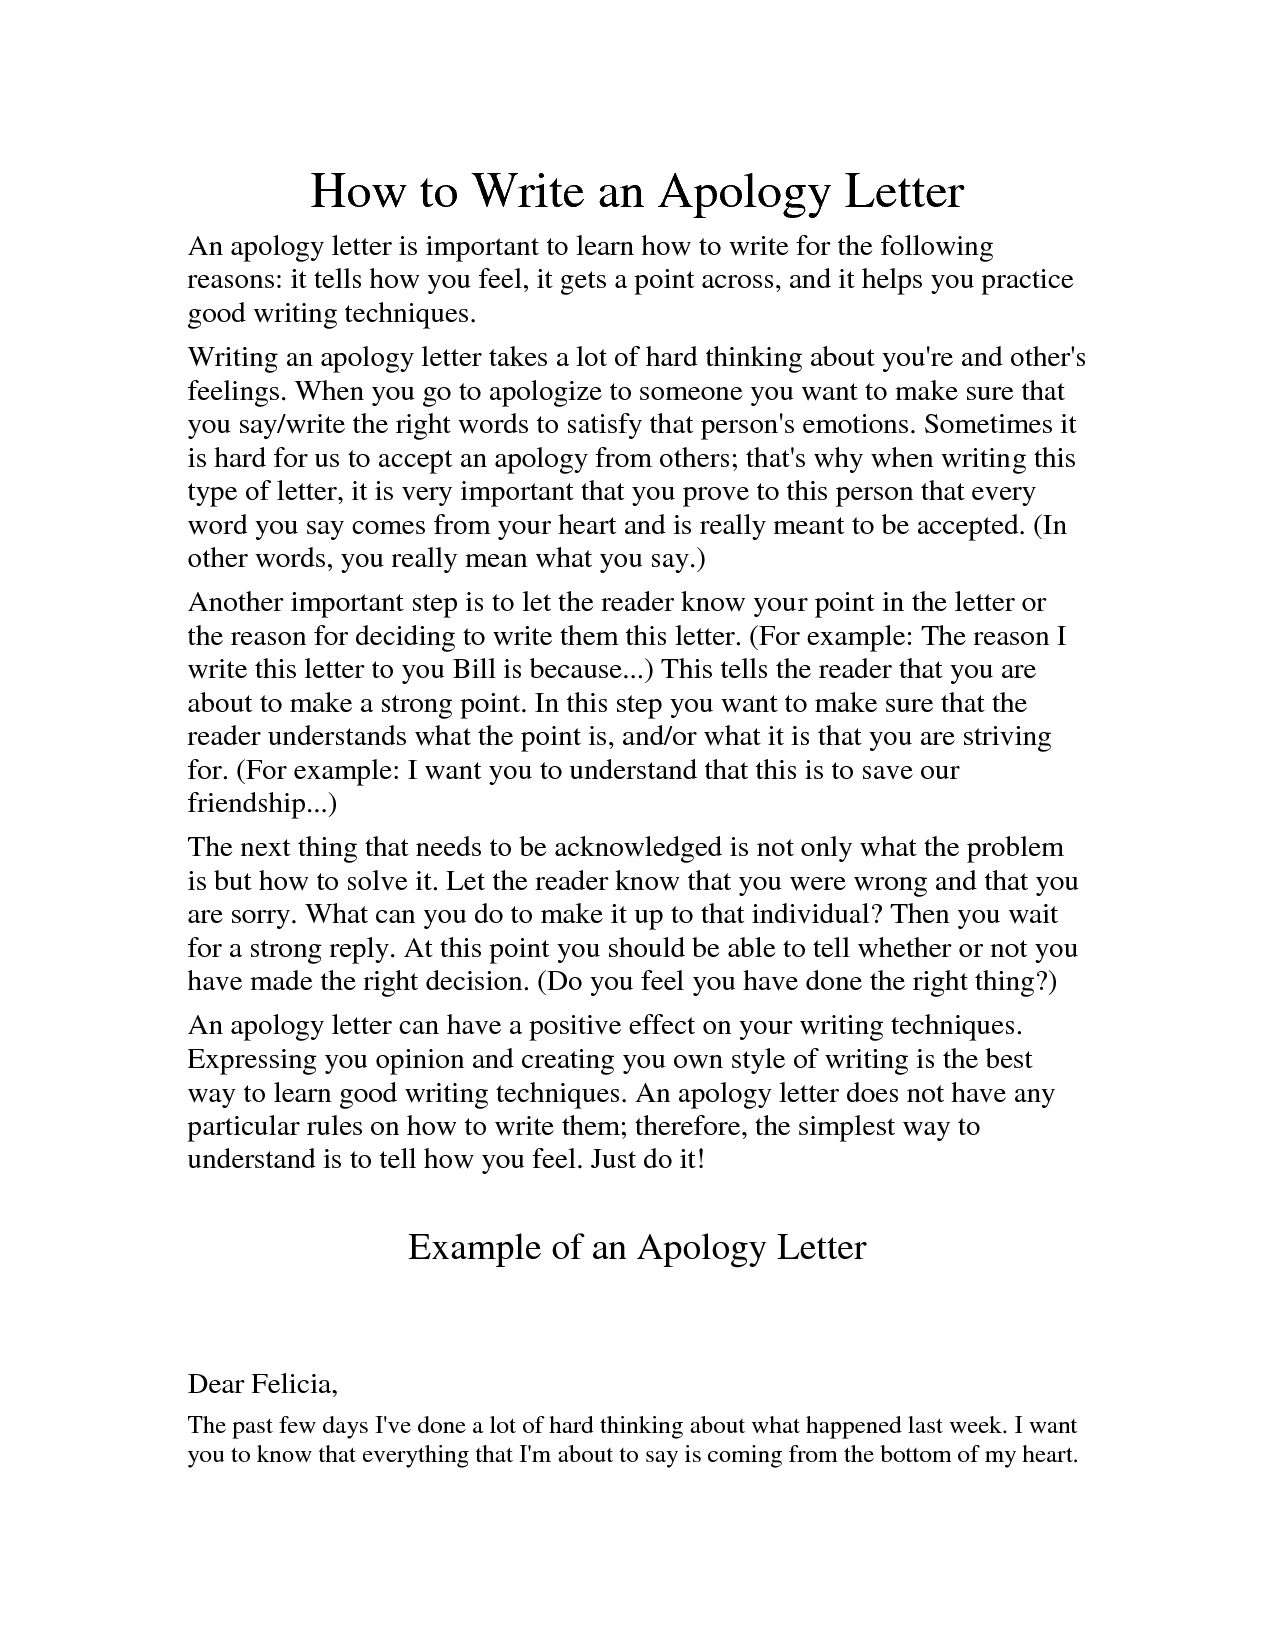 How To Write An Apology Letter To A Teacher Sampleletter Of Apology